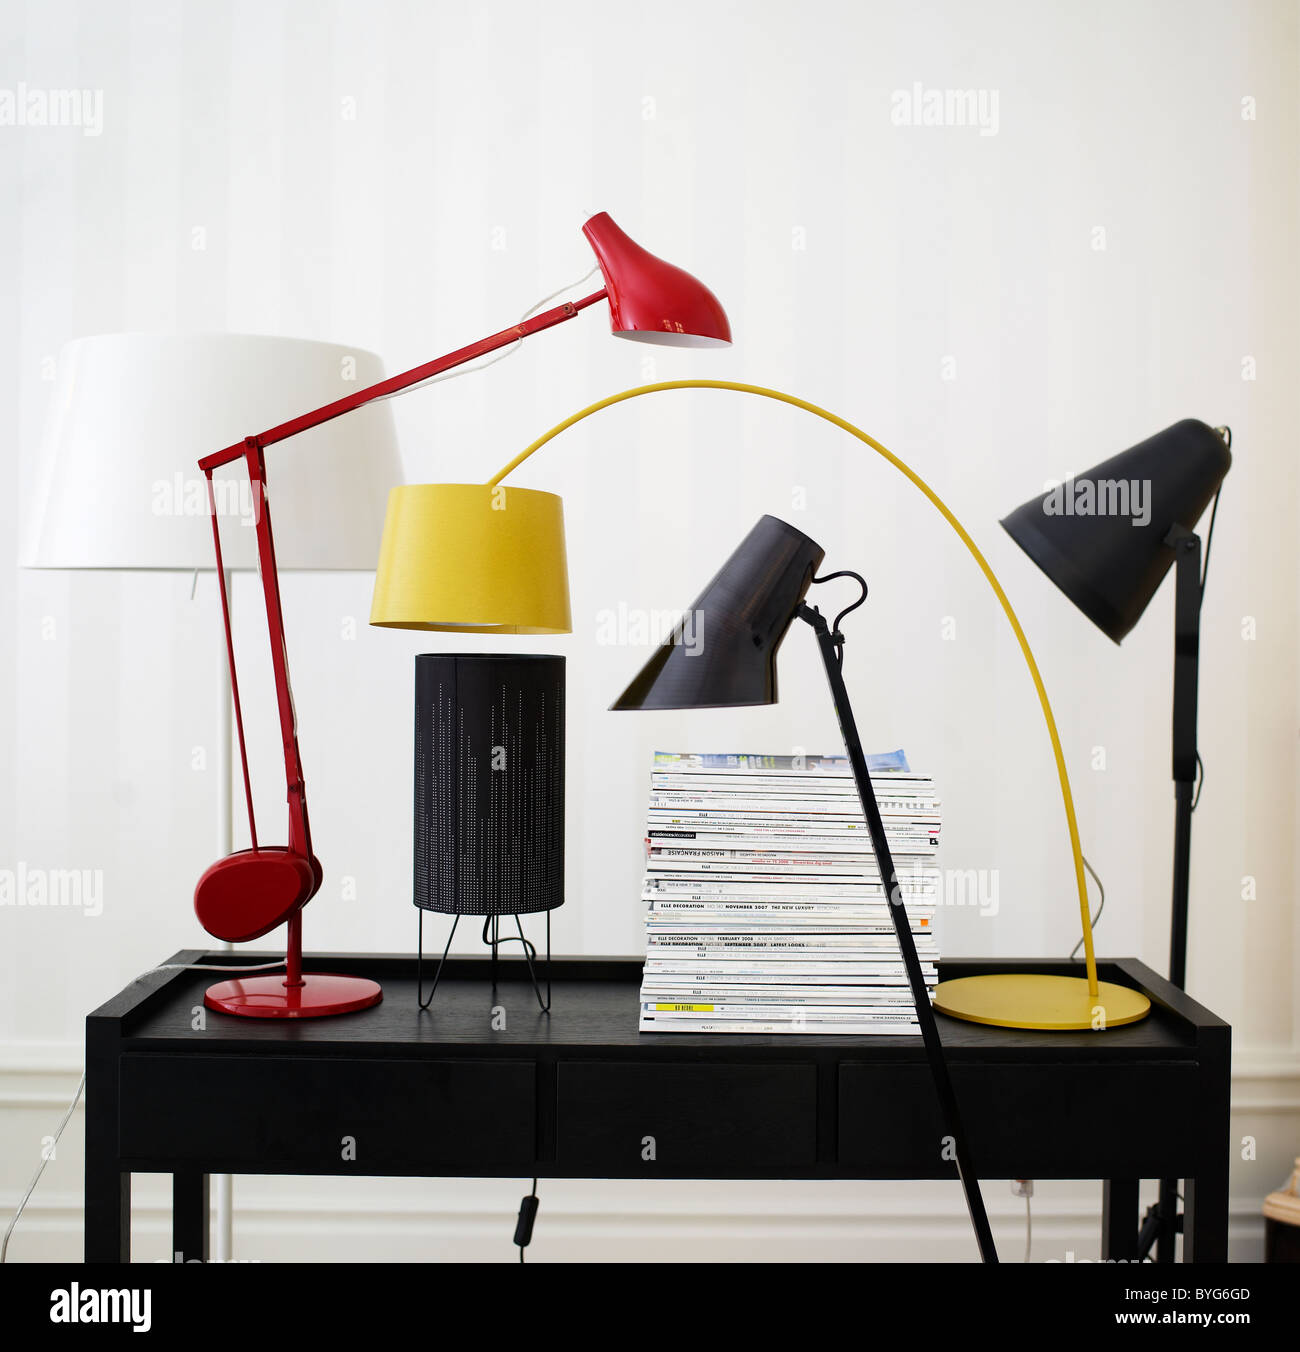 lamps stockfotos lamps bilder alamy. Black Bedroom Furniture Sets. Home Design Ideas